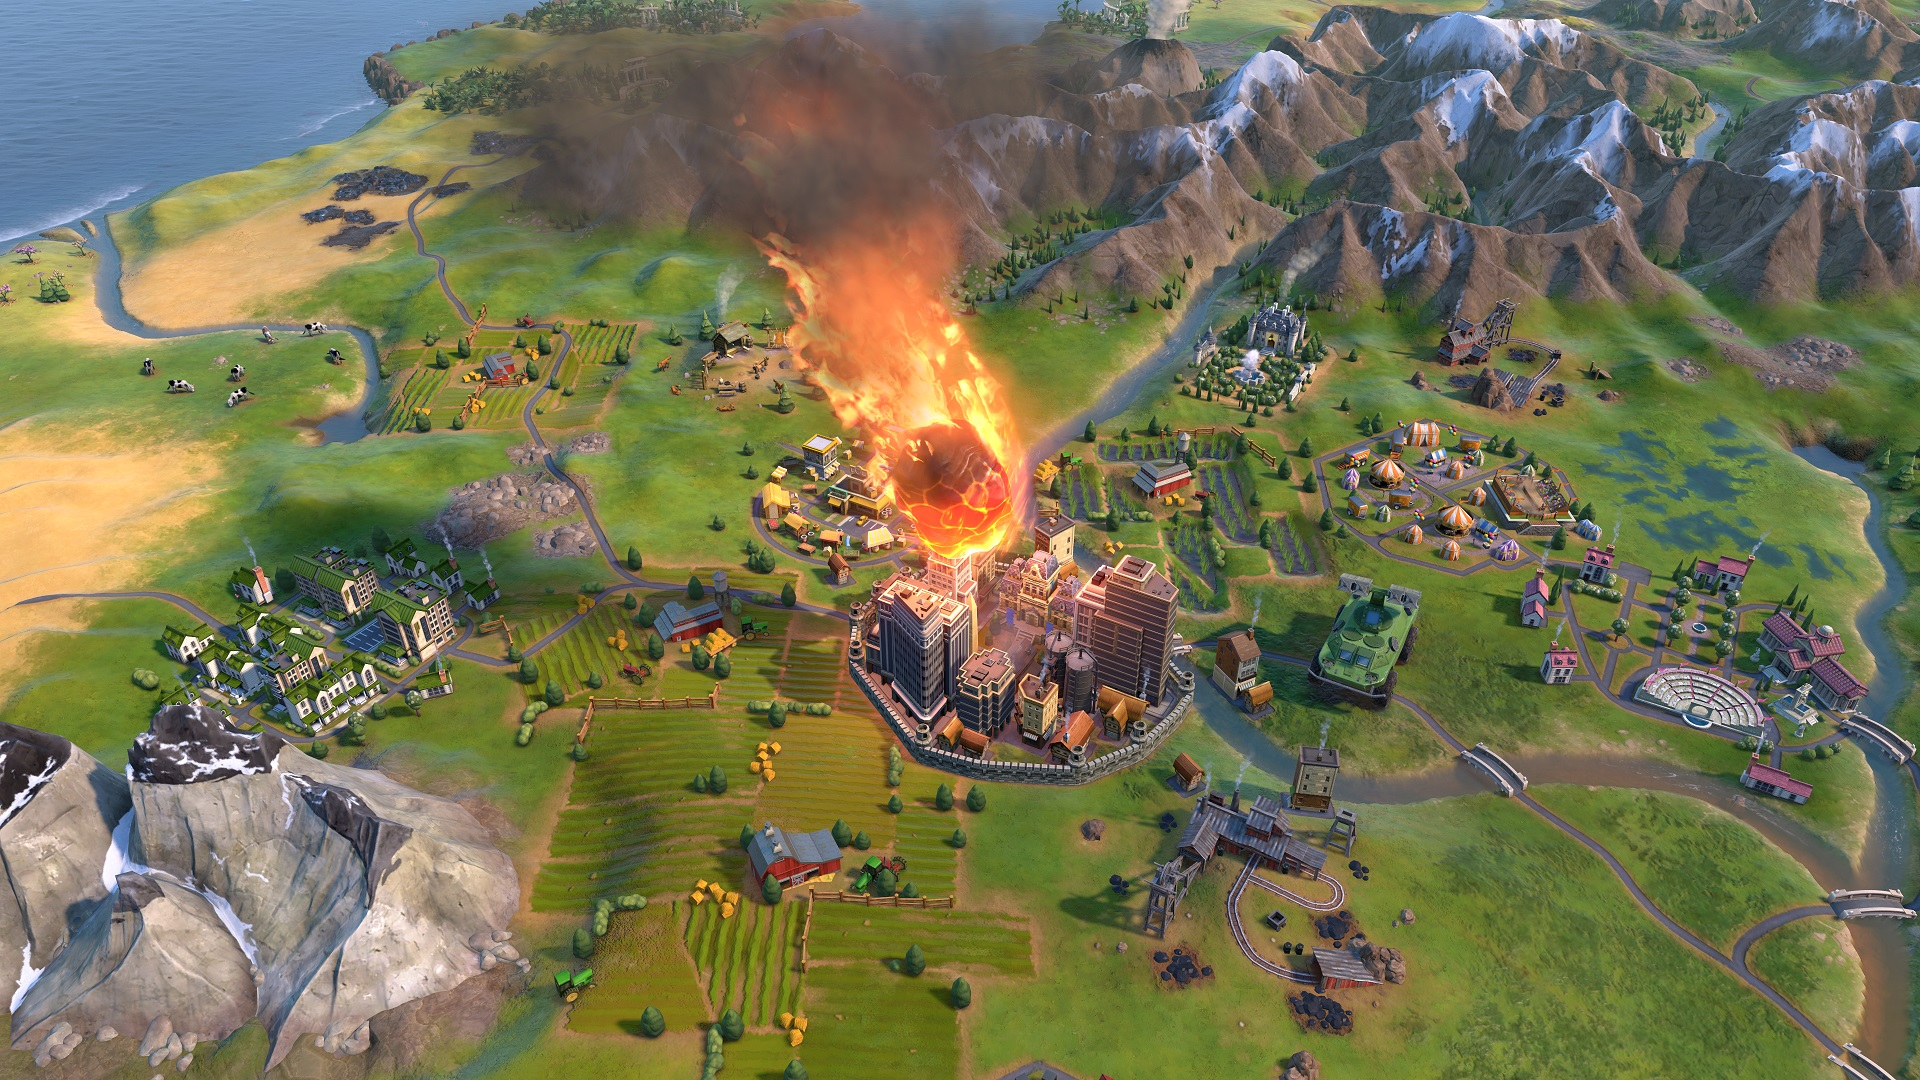 It turns outs the amount of gold Portugal can generate in Civilization 6 is disgusting